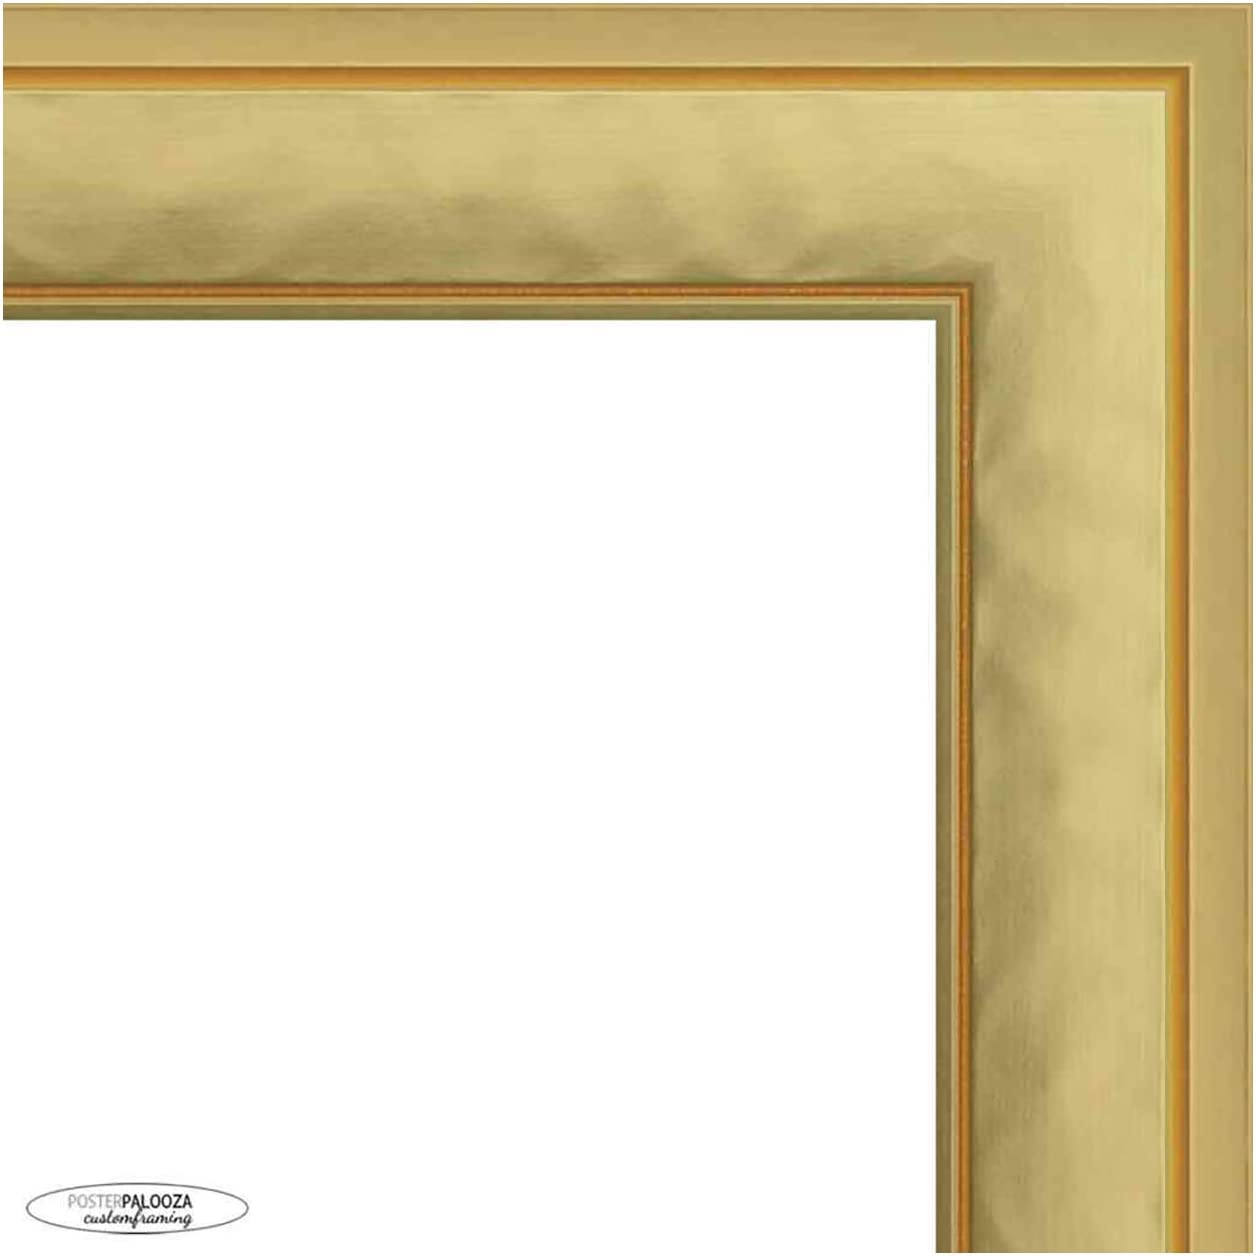 20x14 Contemporary Gold Complete Wood with Frame Acry UV Sales SEAL limited product Picture